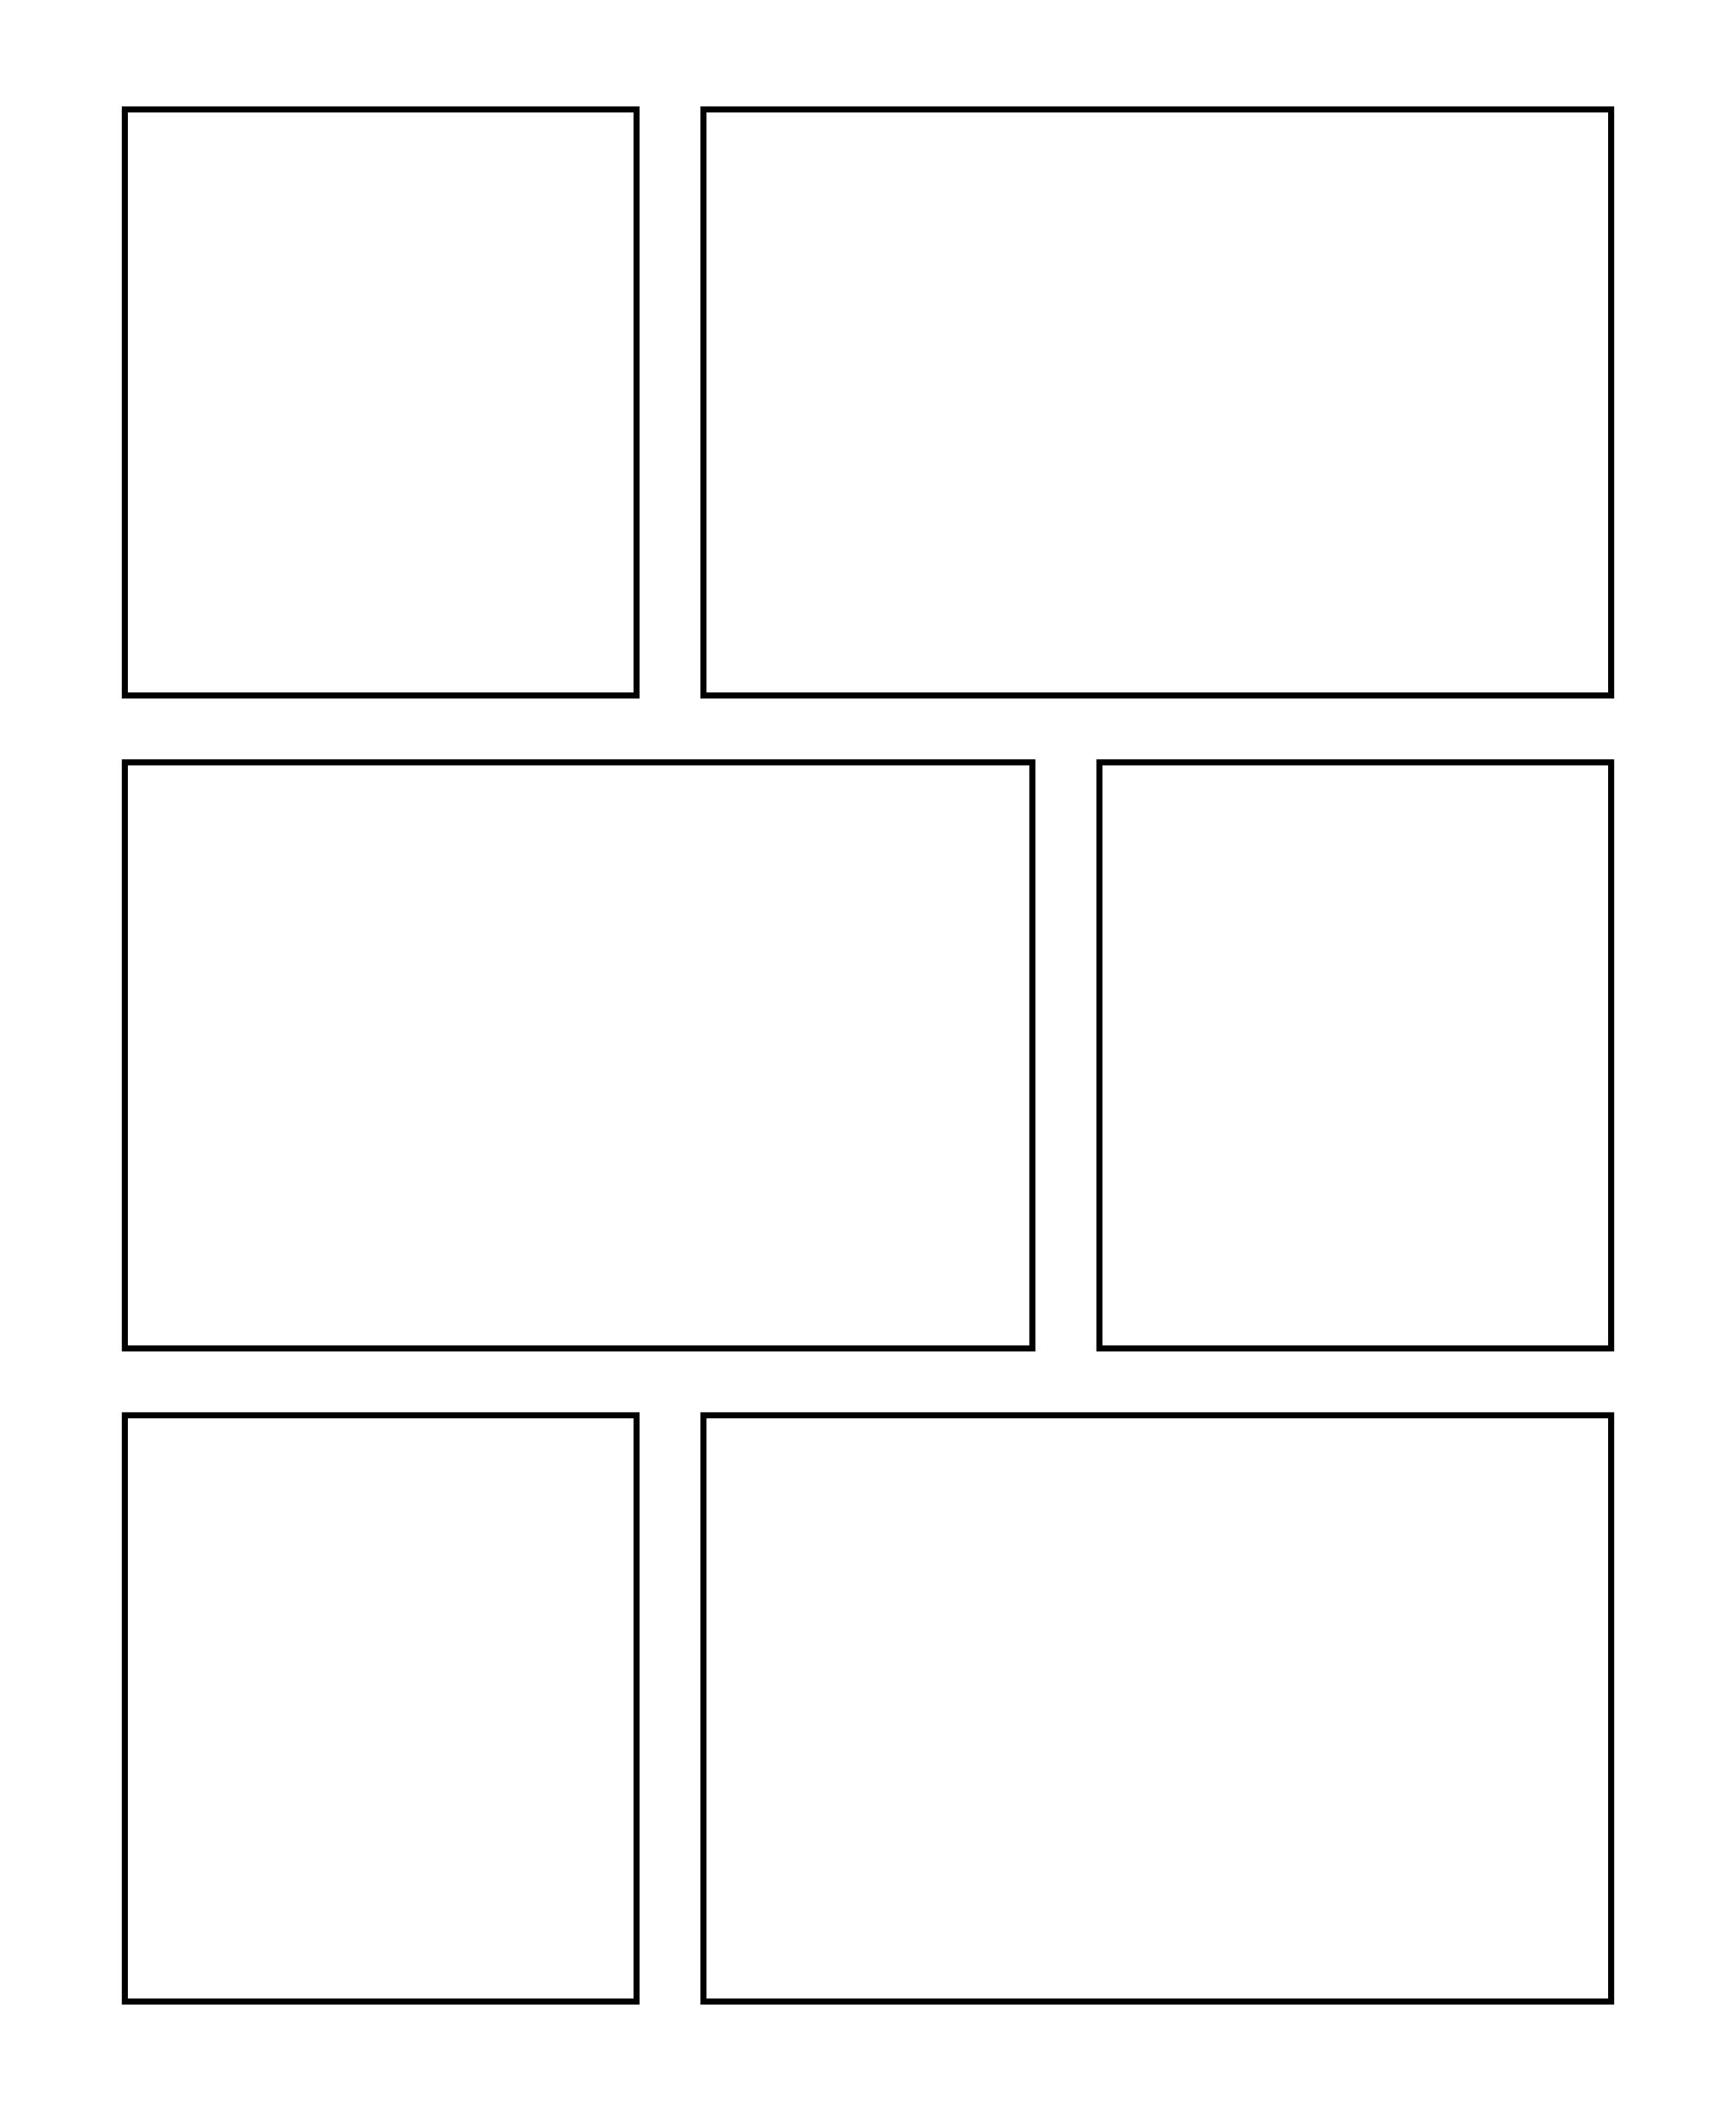 Comic strip template 8 panels mrs ormans classroom: offering choices